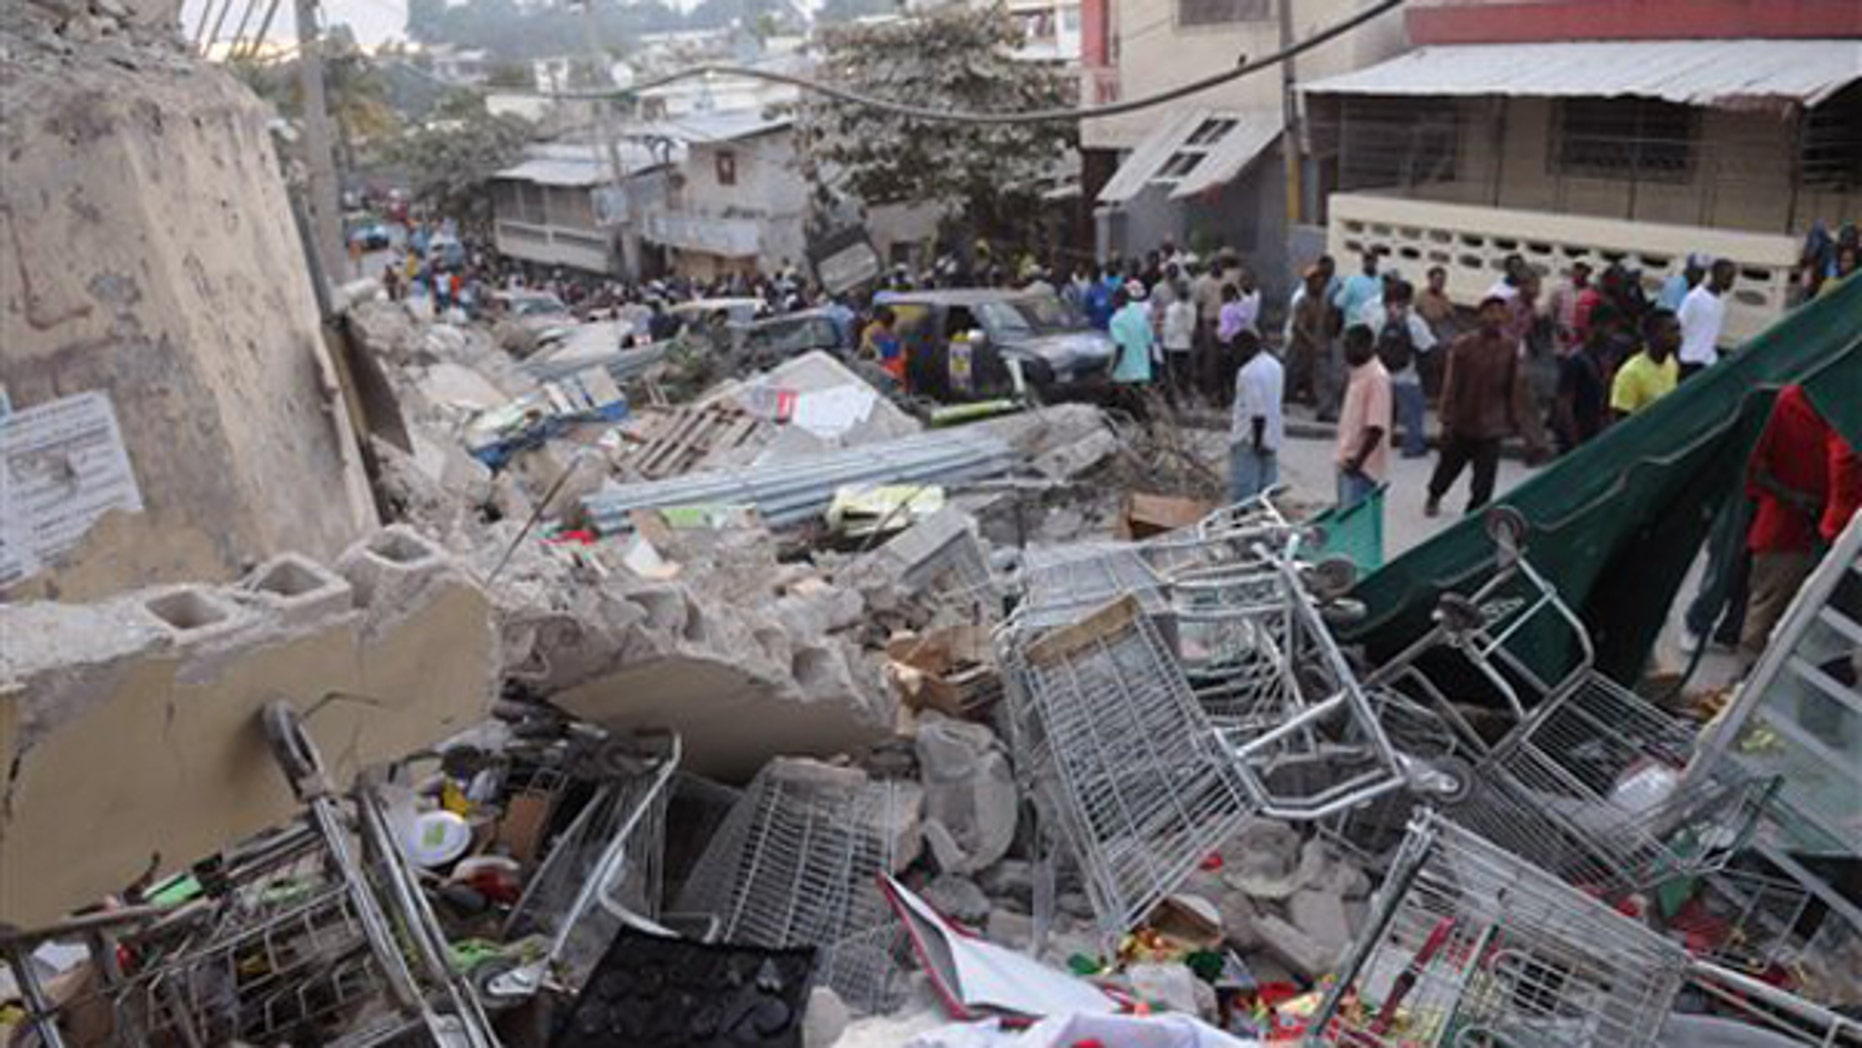 Debris lays in the street after an earthquake along the Delmas road in Port-au-Prince, Haiti, Wednesday, Jan. 13, 2010. (AP)